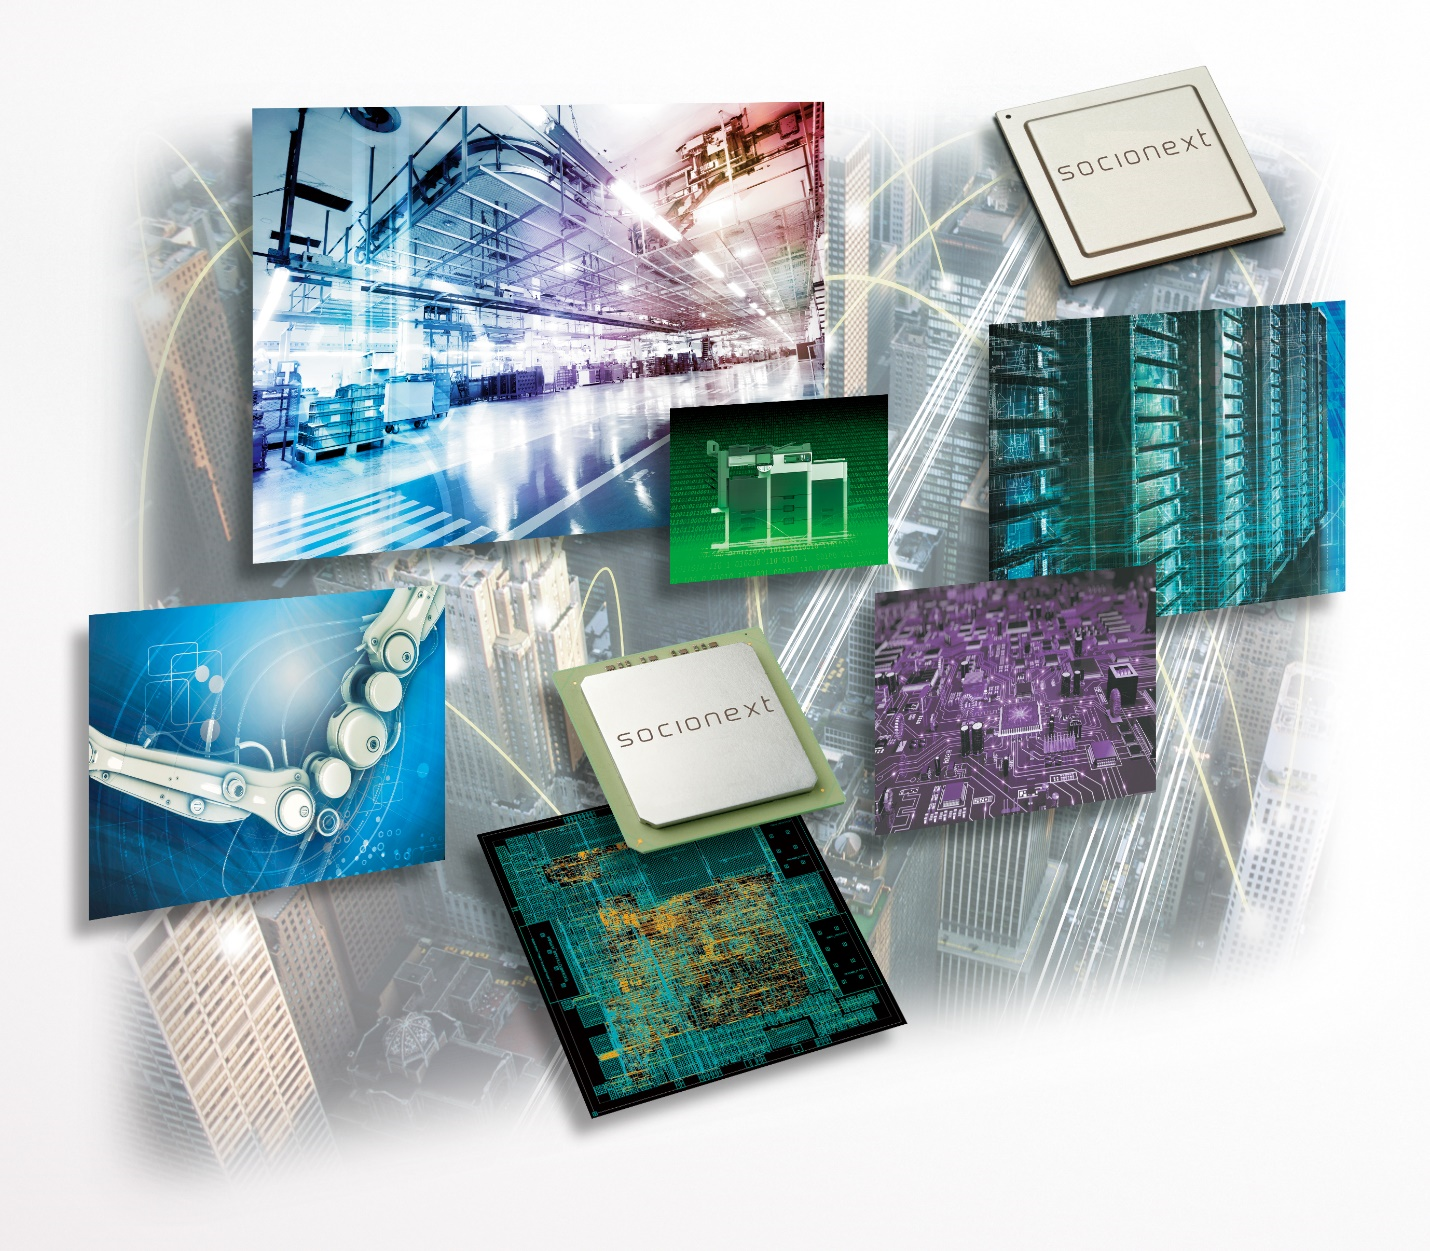 Industrial automation and IoT solutions